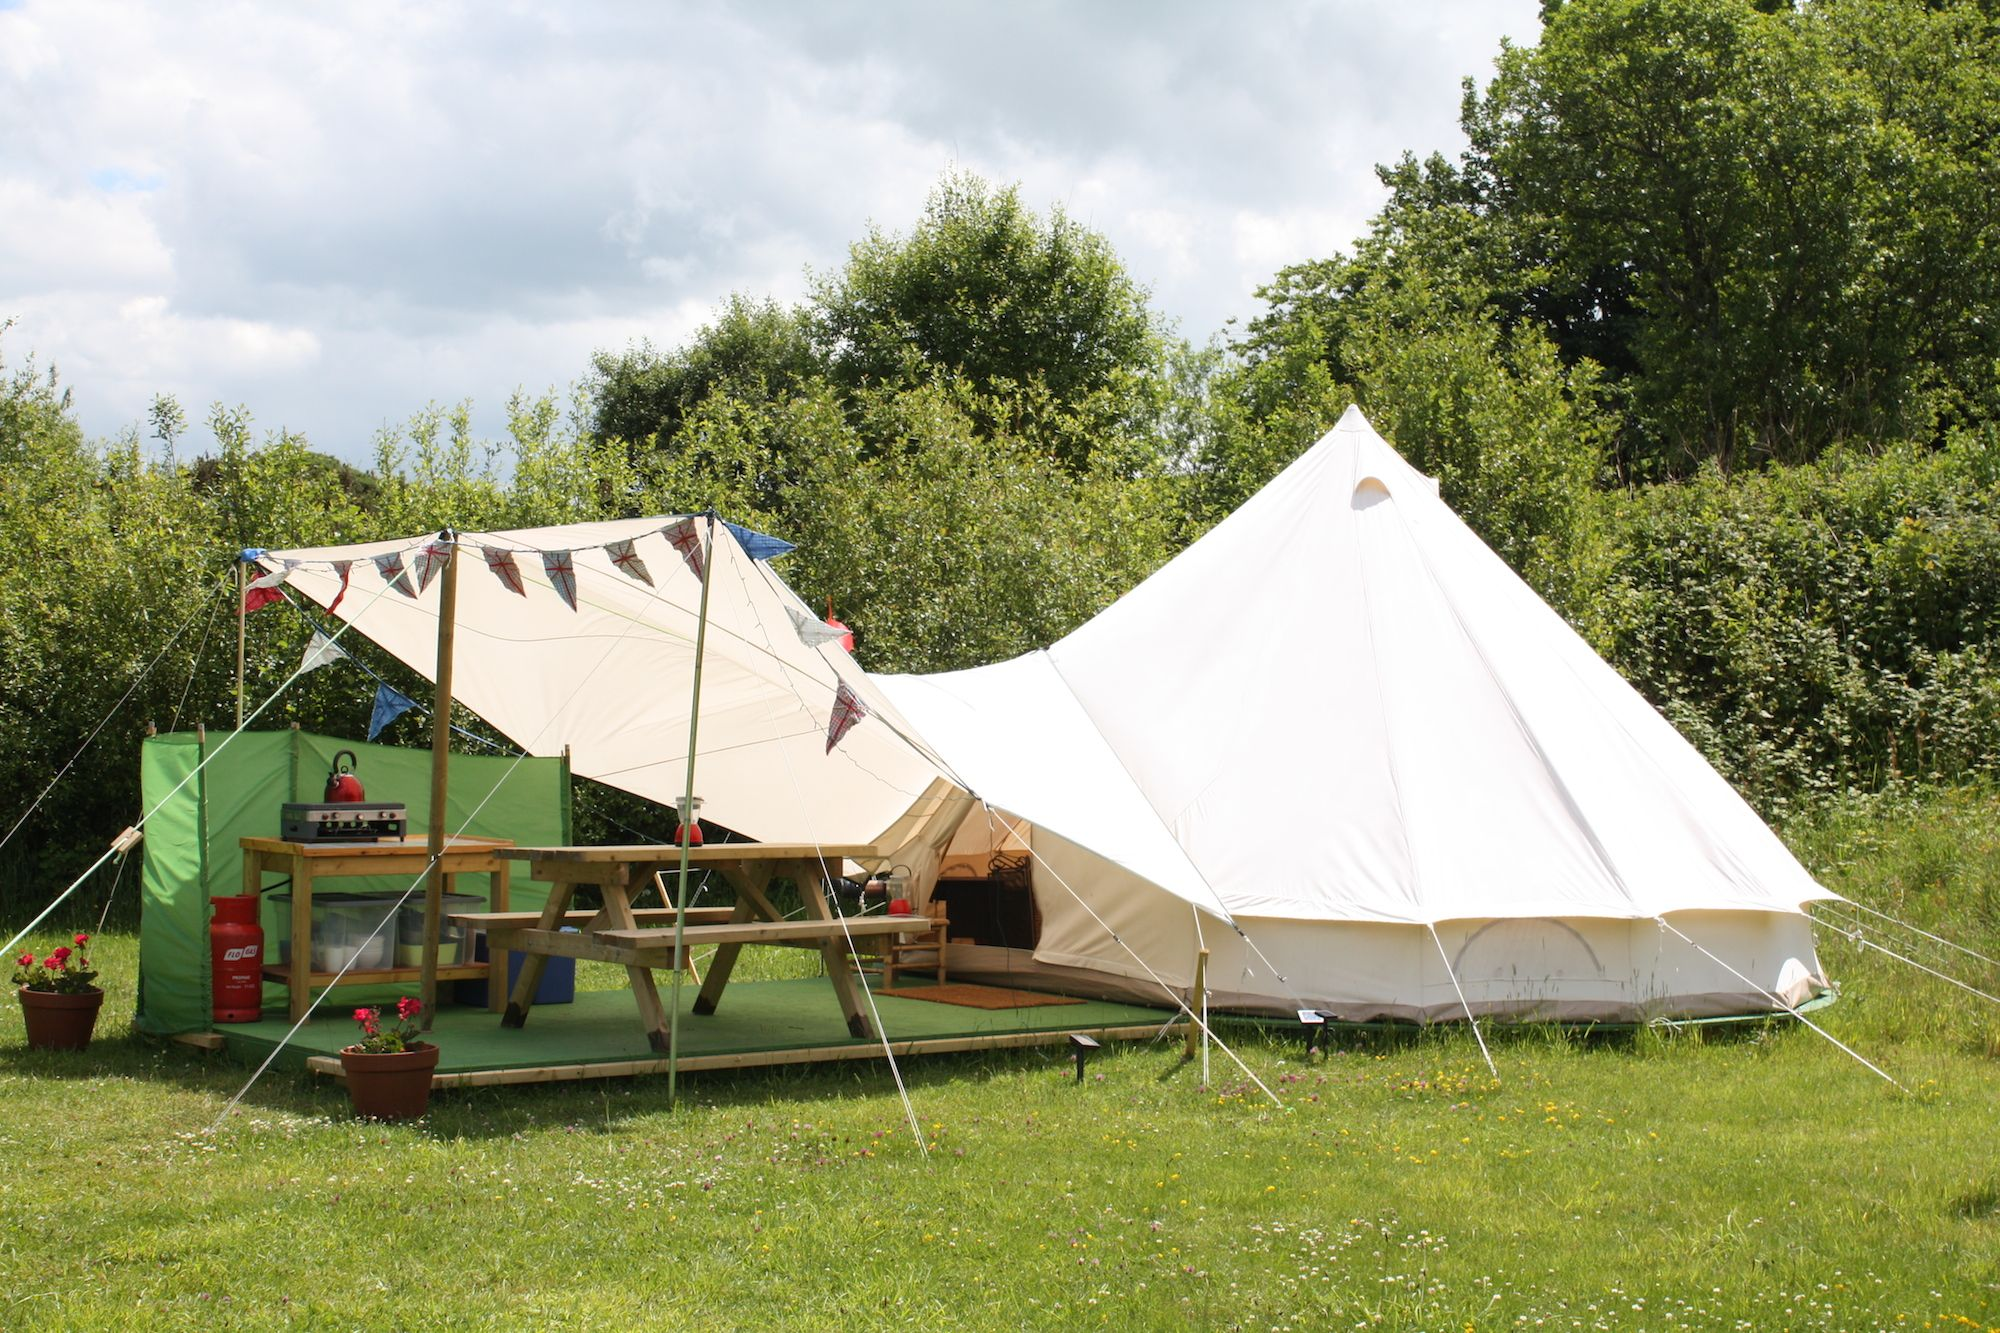 bell tent awning - Google Search u2026 & bell tent awning - Google Search u2026 | The Great Outdoors ...